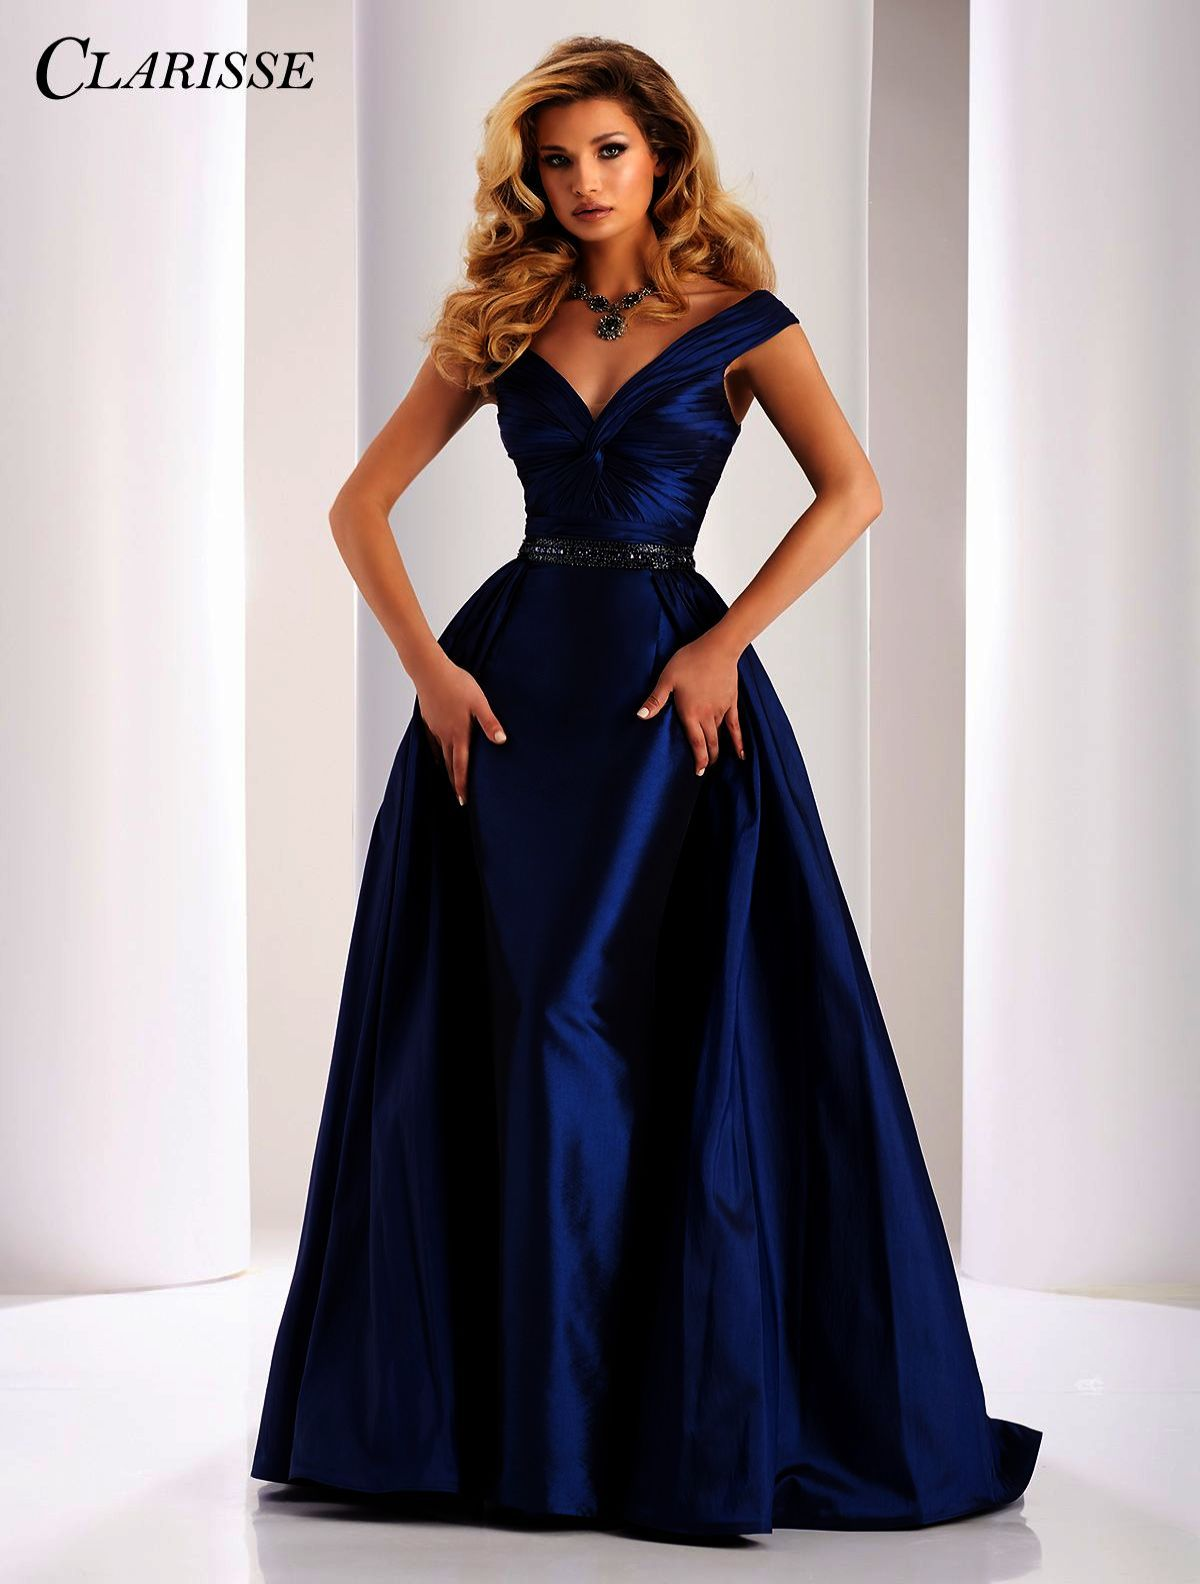 Dress for wedding evening party  Formal Dress For Wedding Evening Dress Emerald Green  Evening